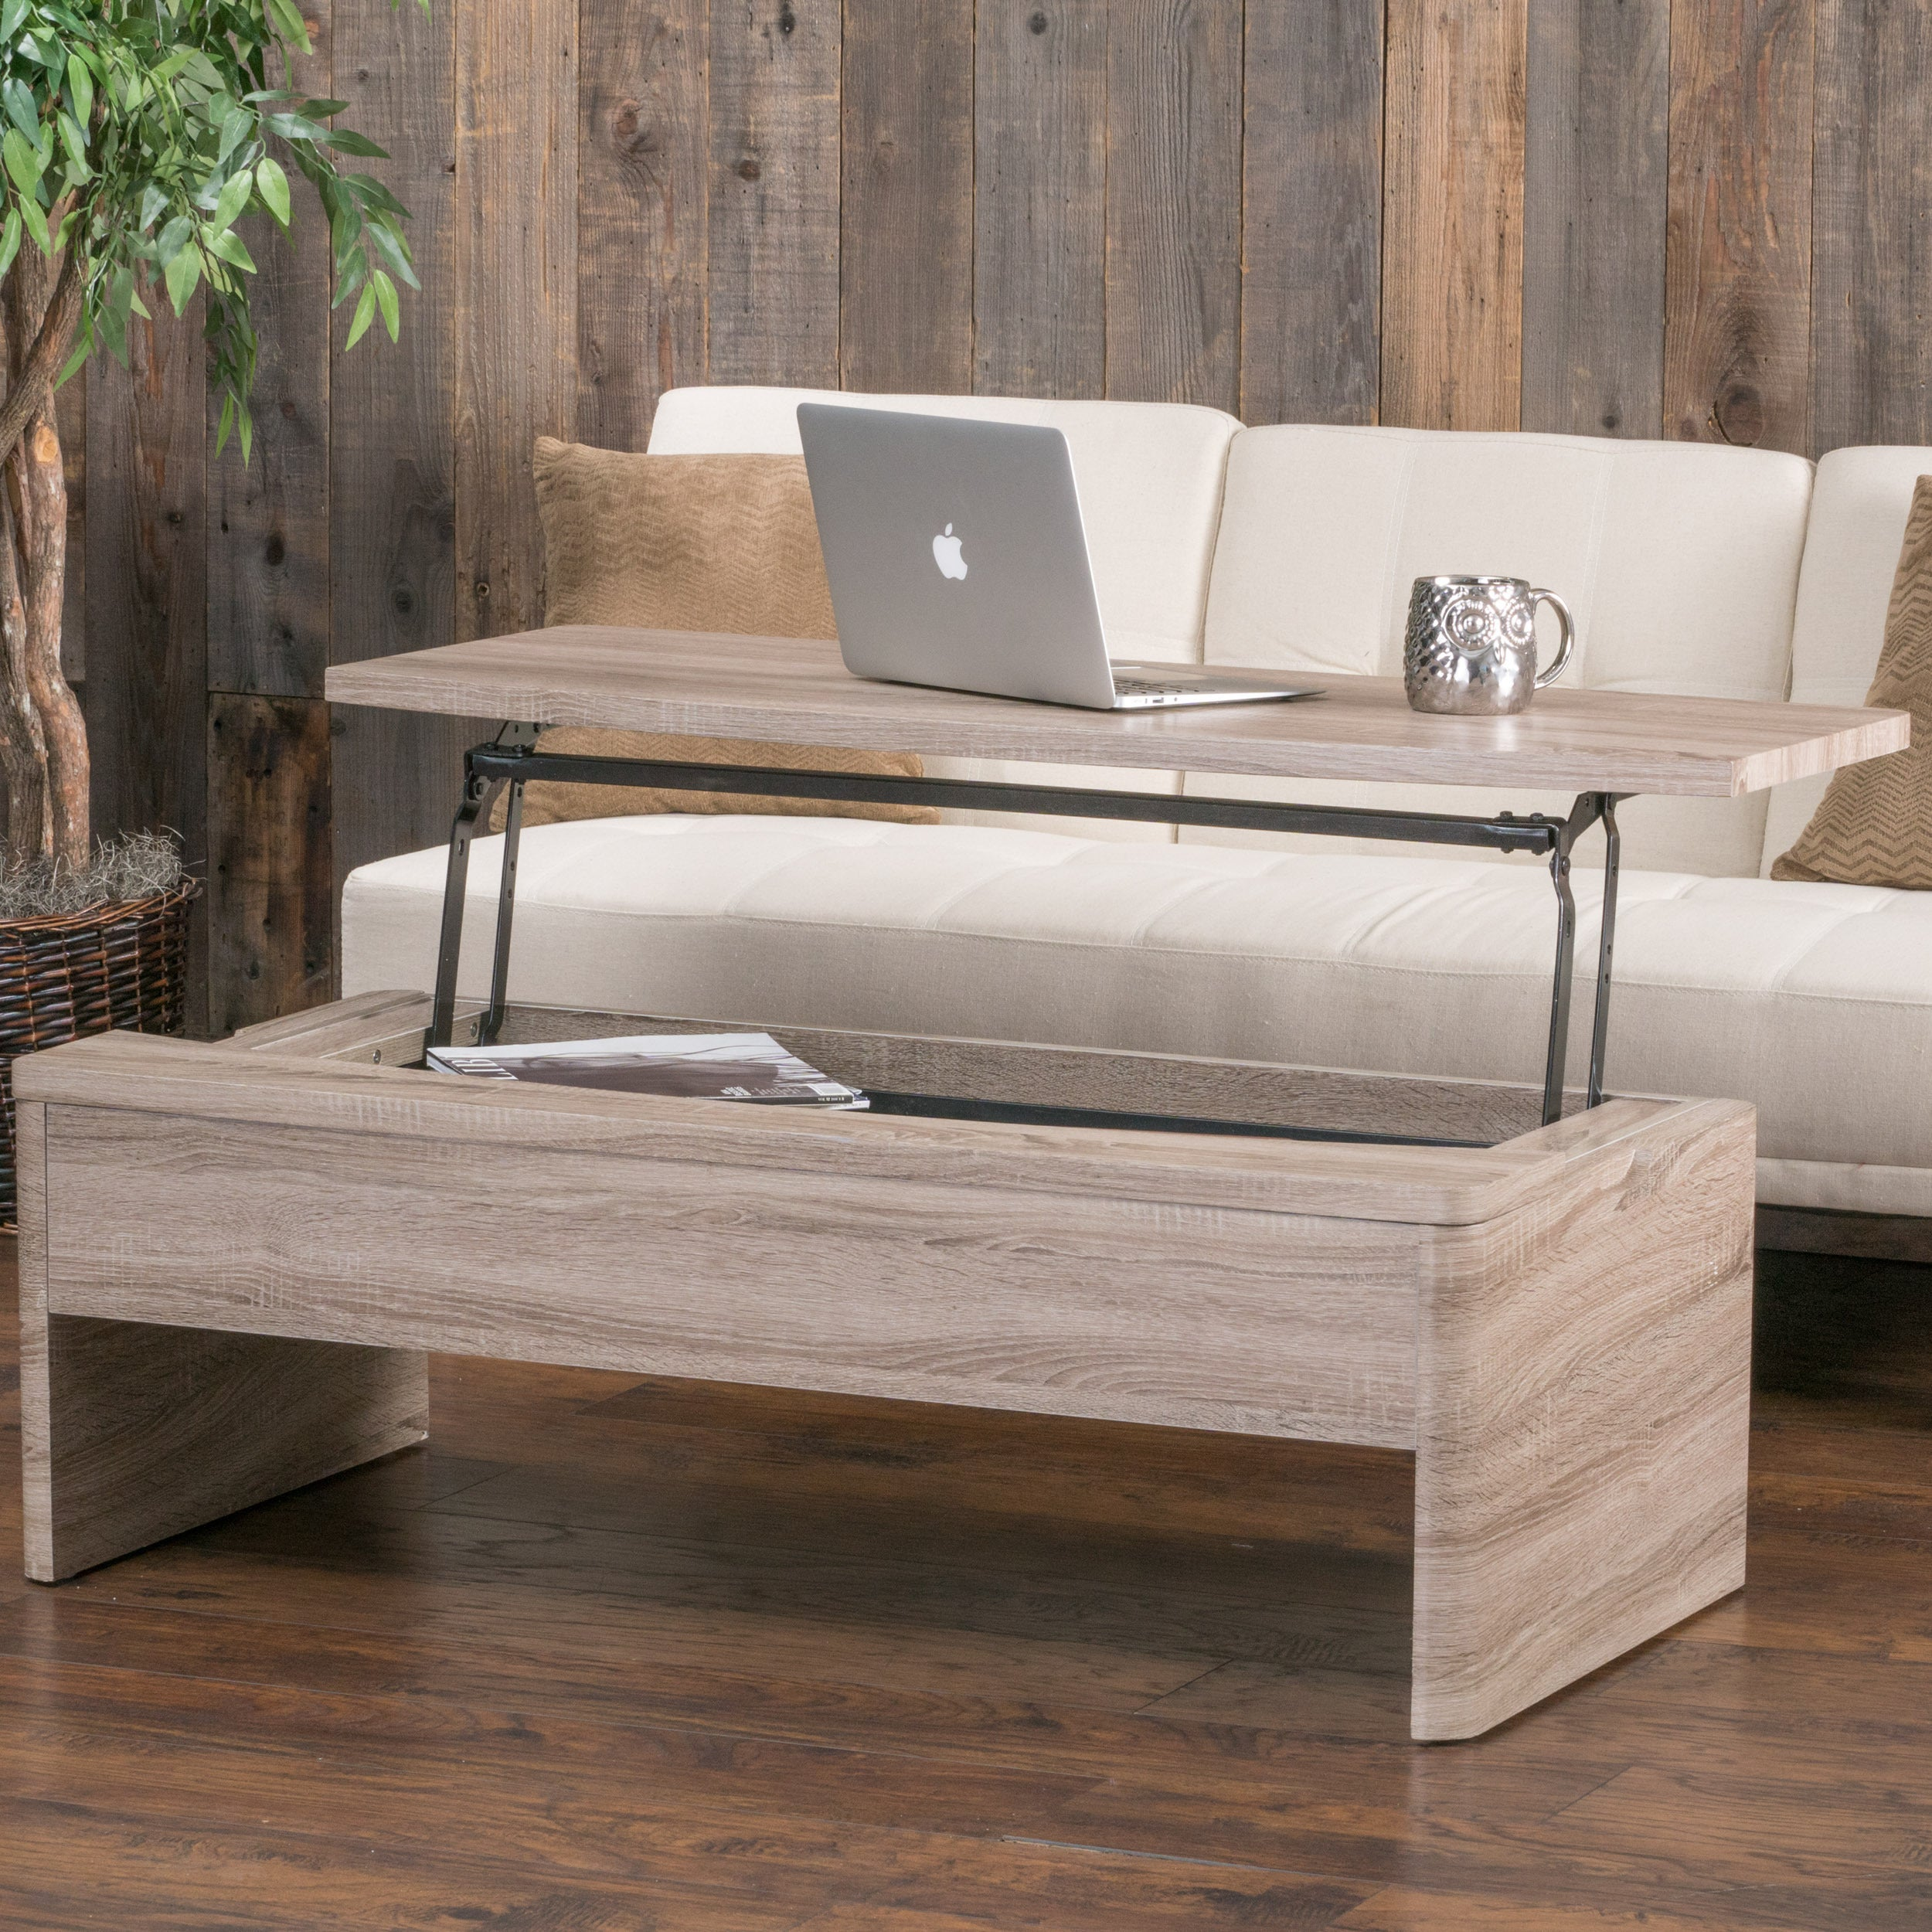 Xander Functional Lift Top Wood Storage Coffee Table By Christopher Knight Home Free Shipping Today 10481483